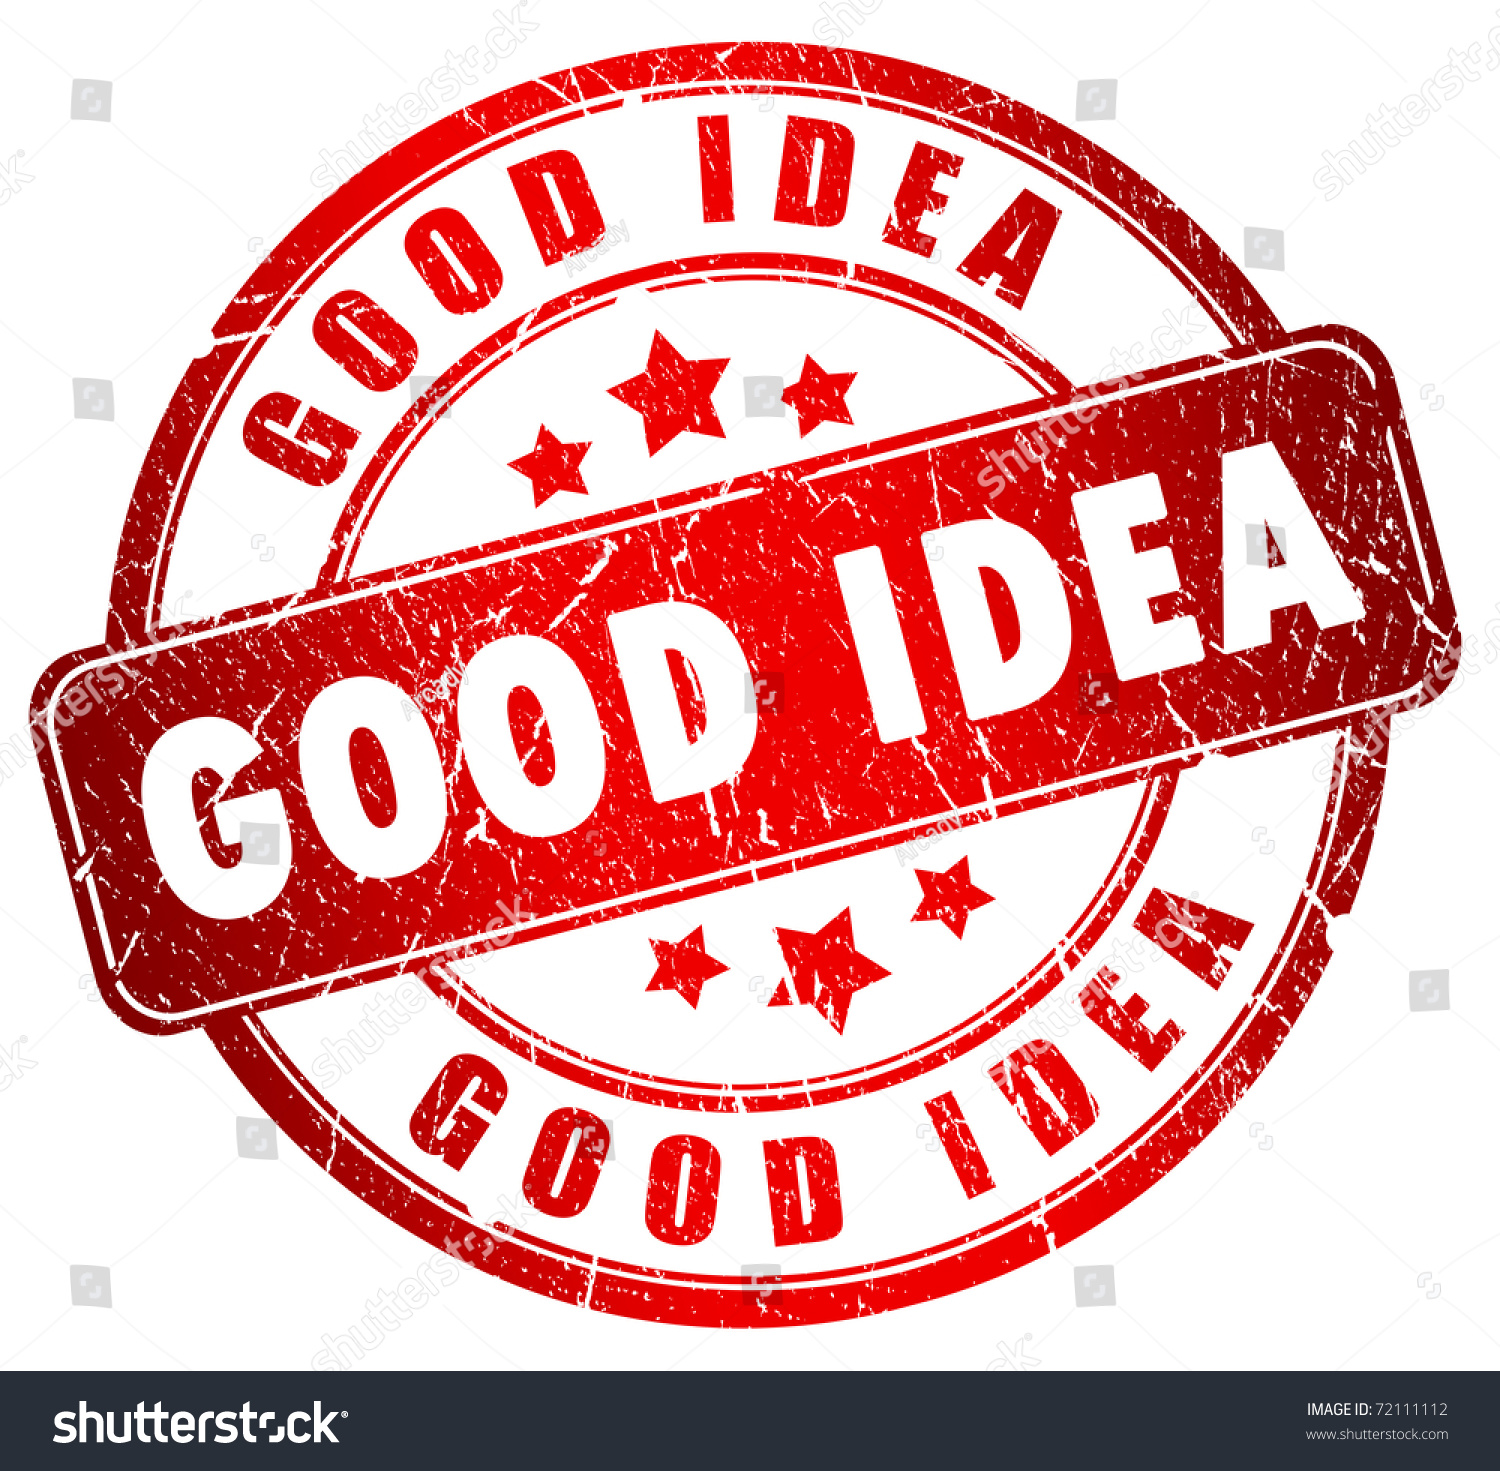 Good Picture Ideas: Good Idea Stamp Stock Photo 72111112 : Shutterstock